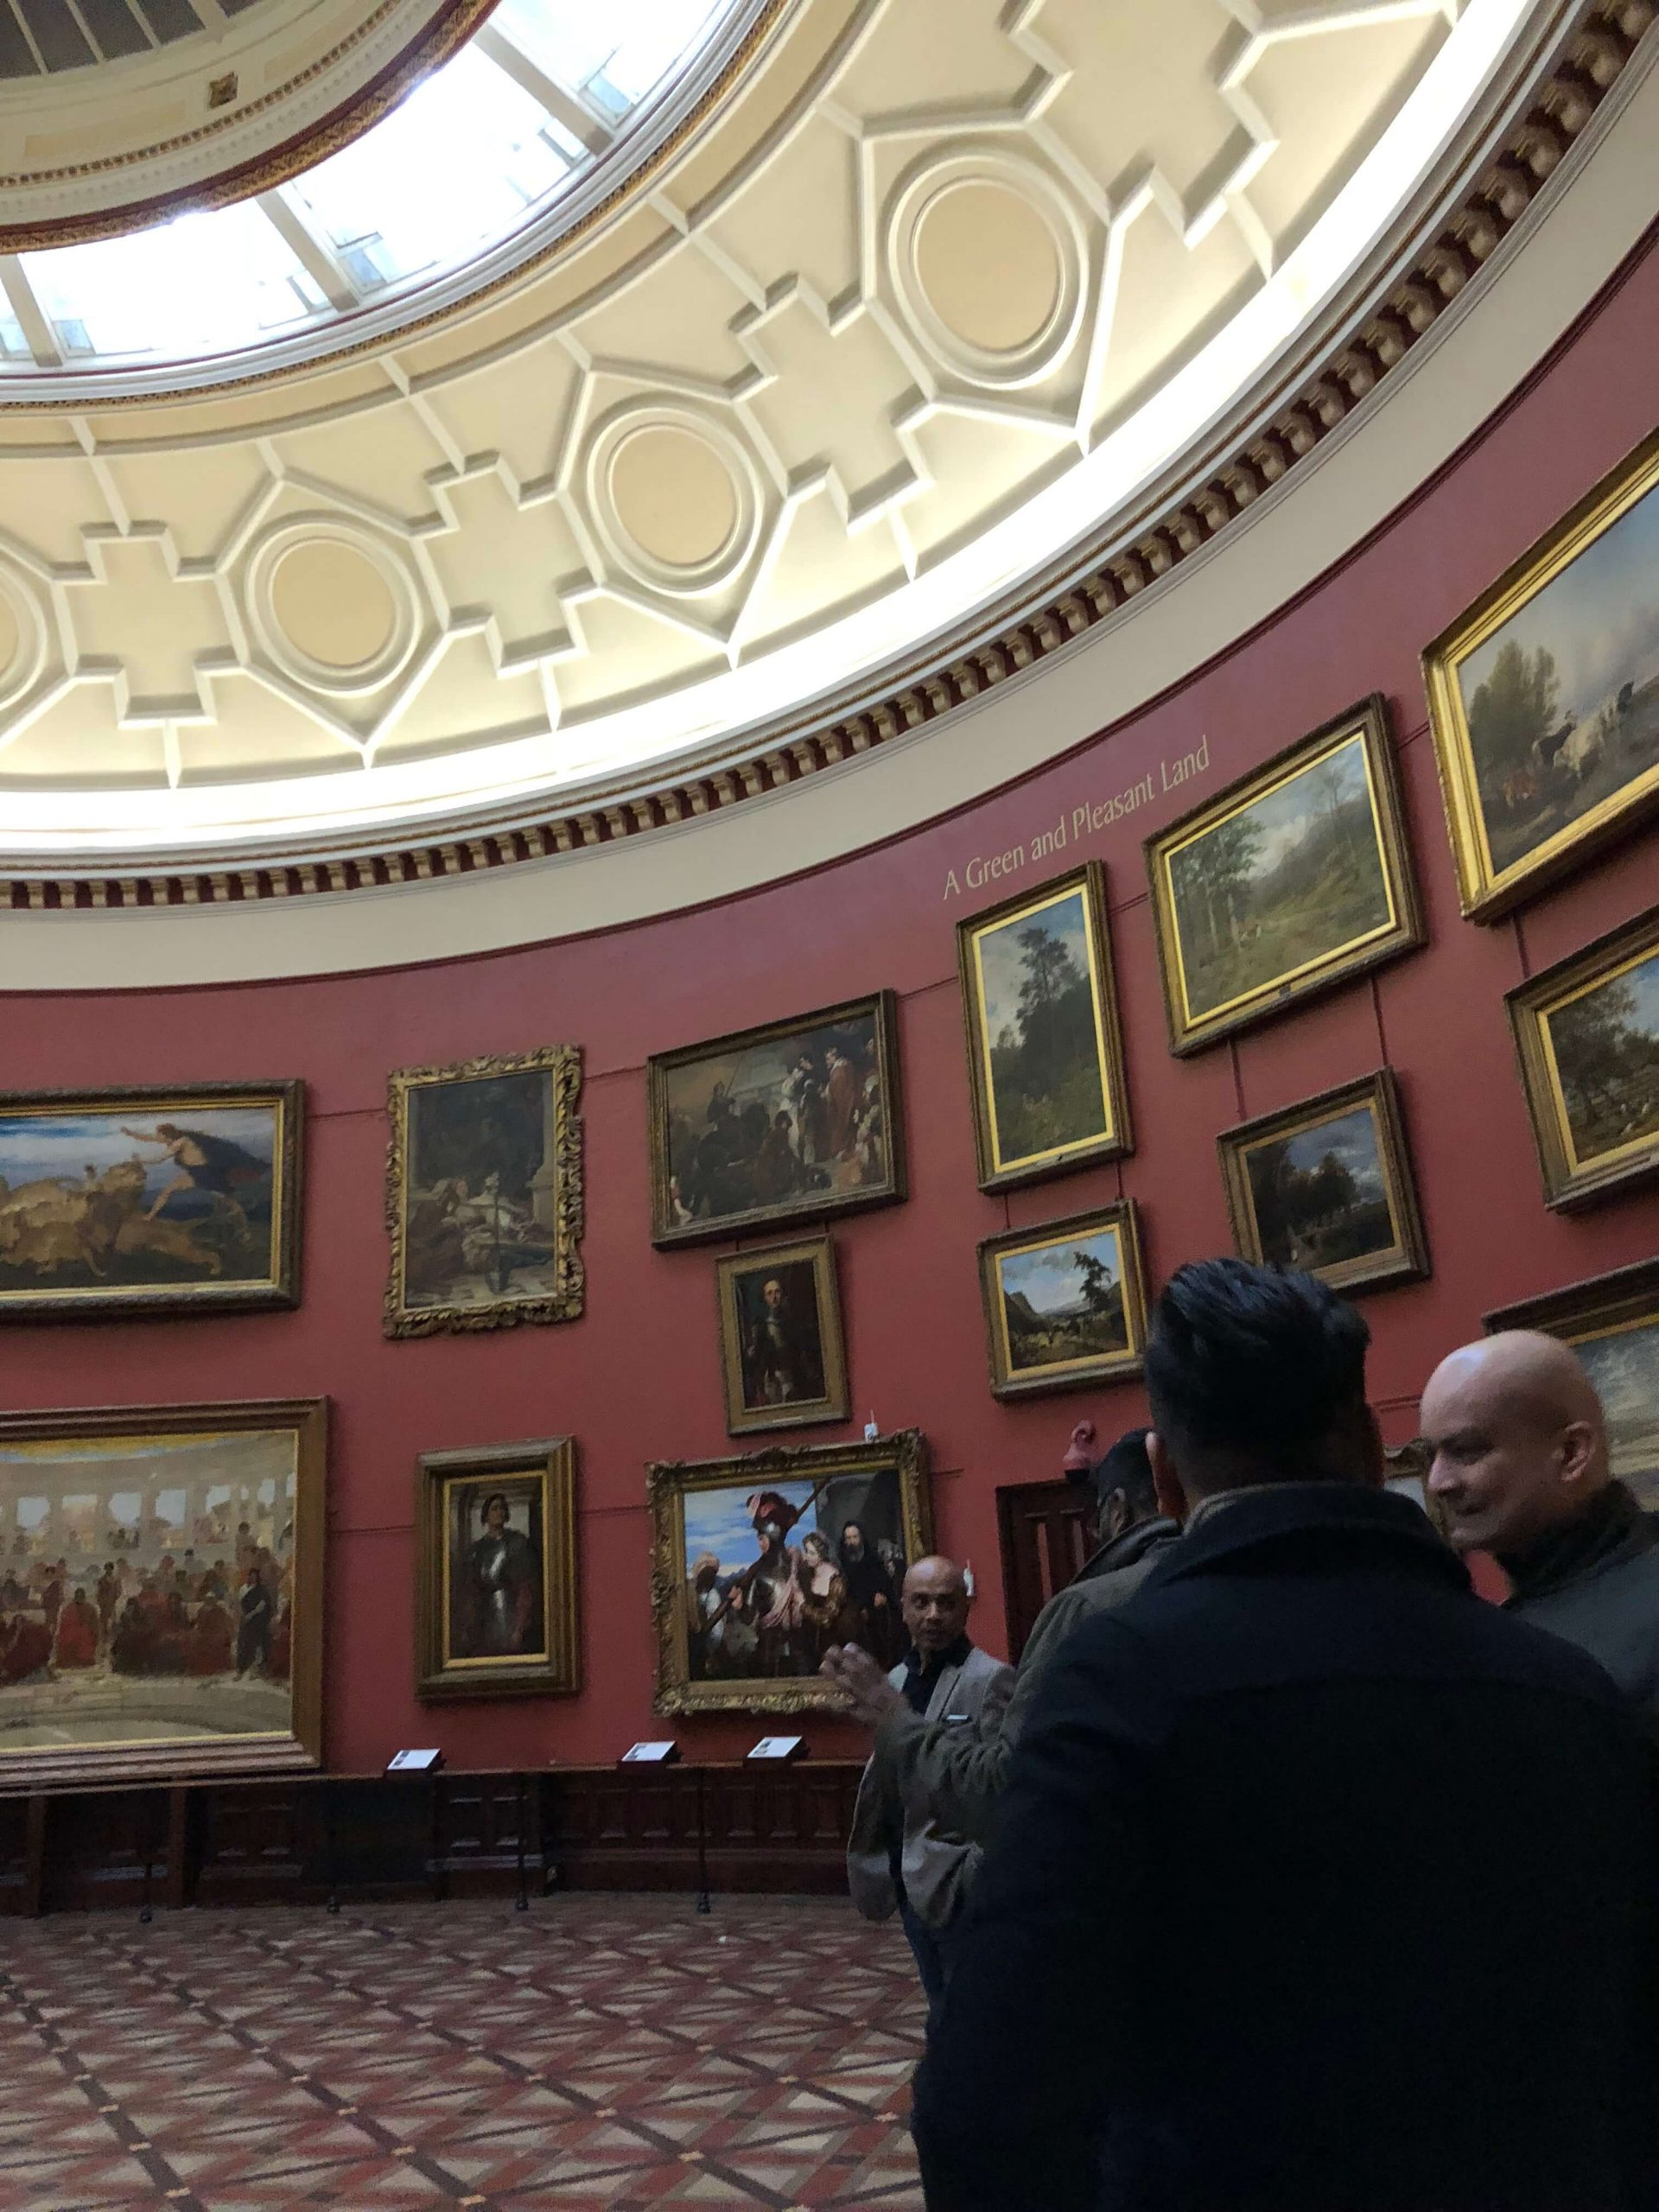 UKCC – Proudly Supporting The Knights Of The Raj Art Exhibition By Mohammed Ali MBE At The Birmingham Museum